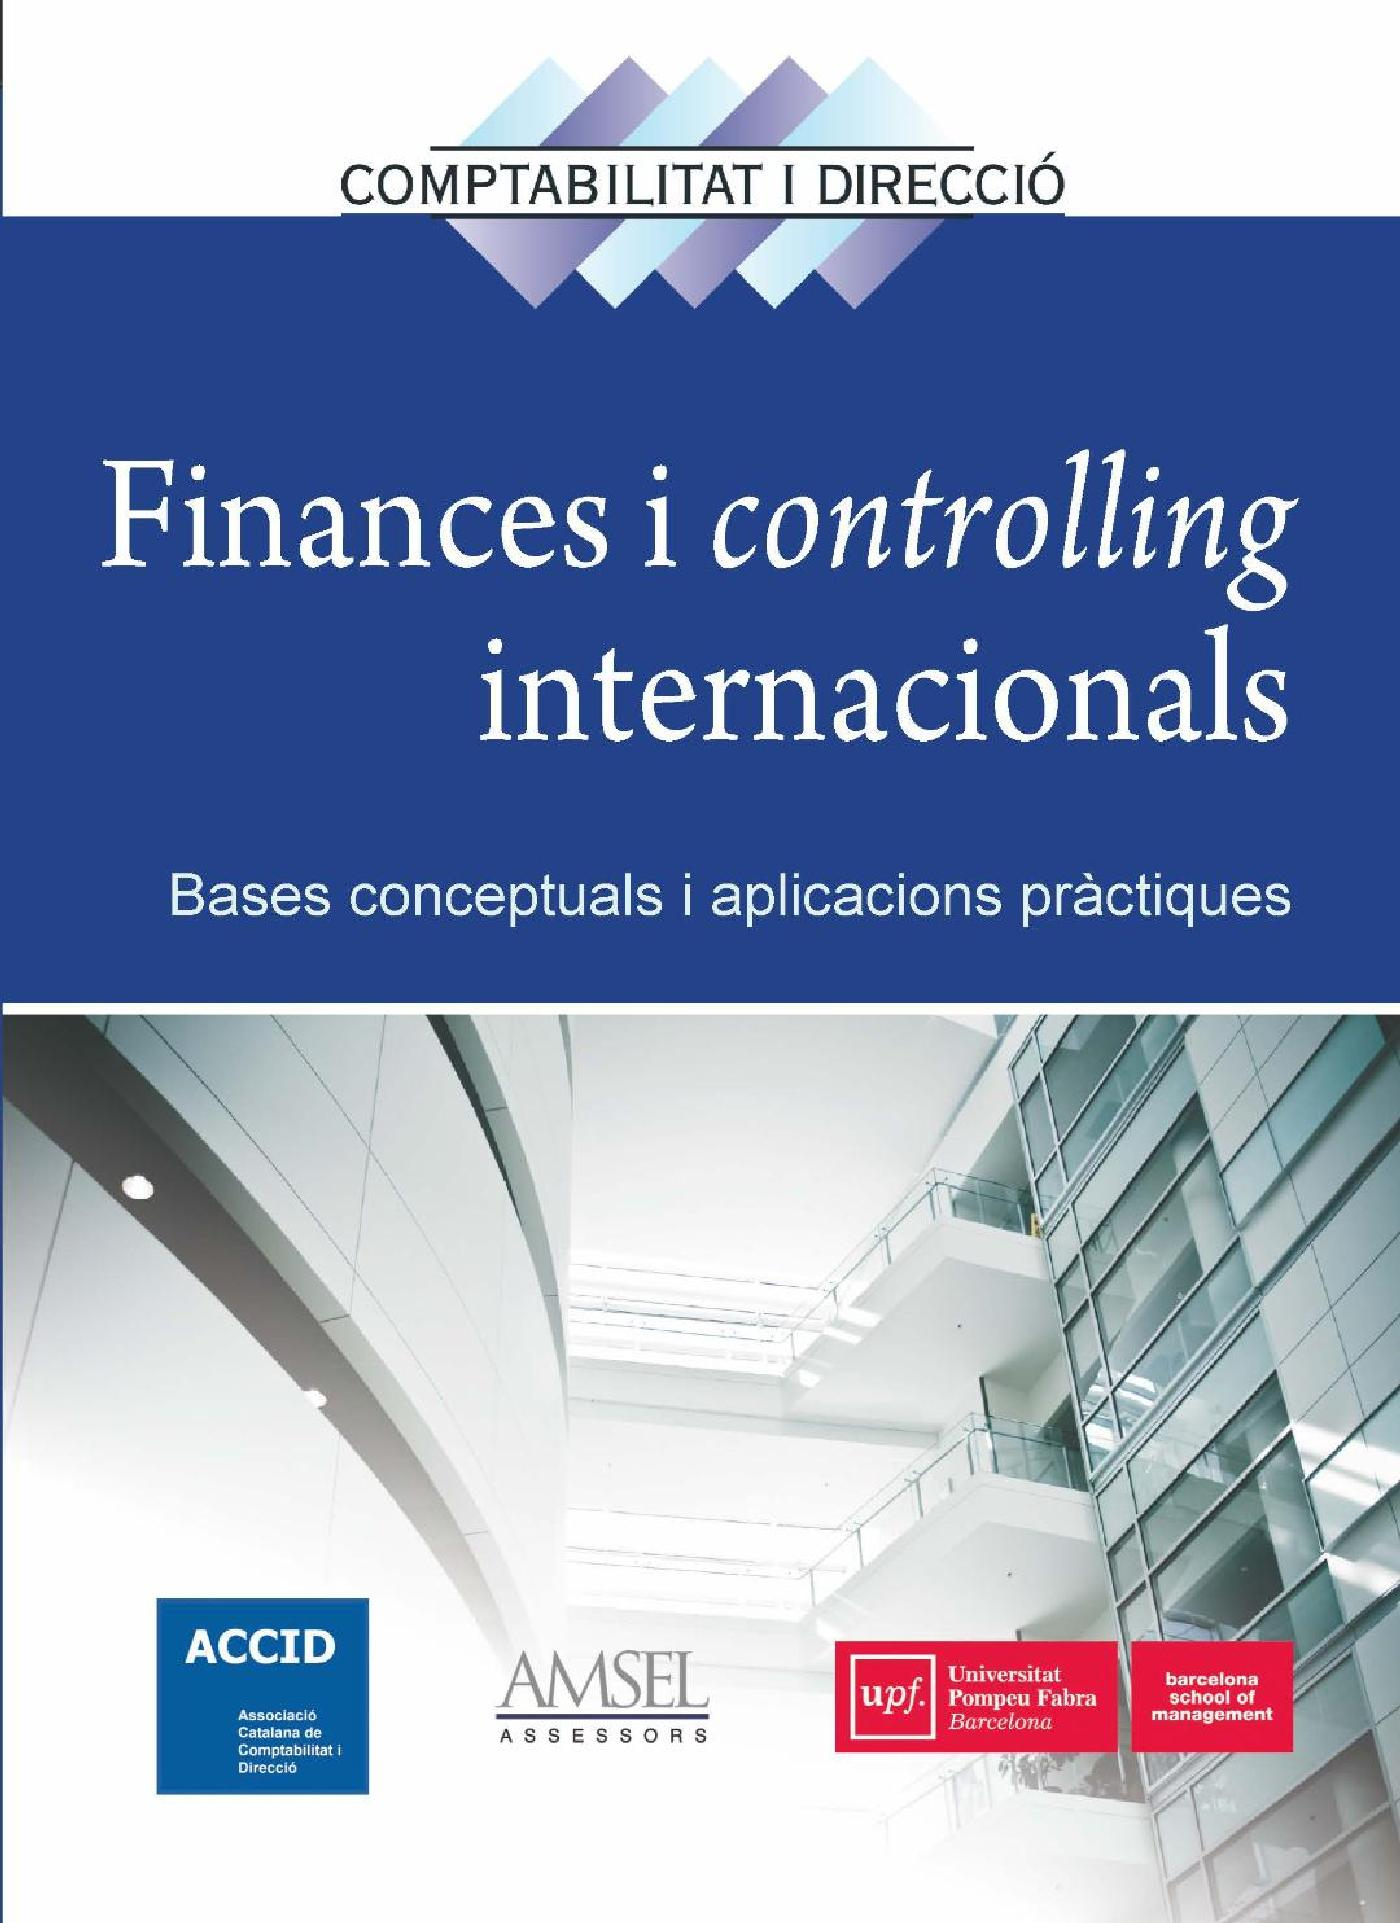 FINANCES I CONTROLLING INTERNACIONALS